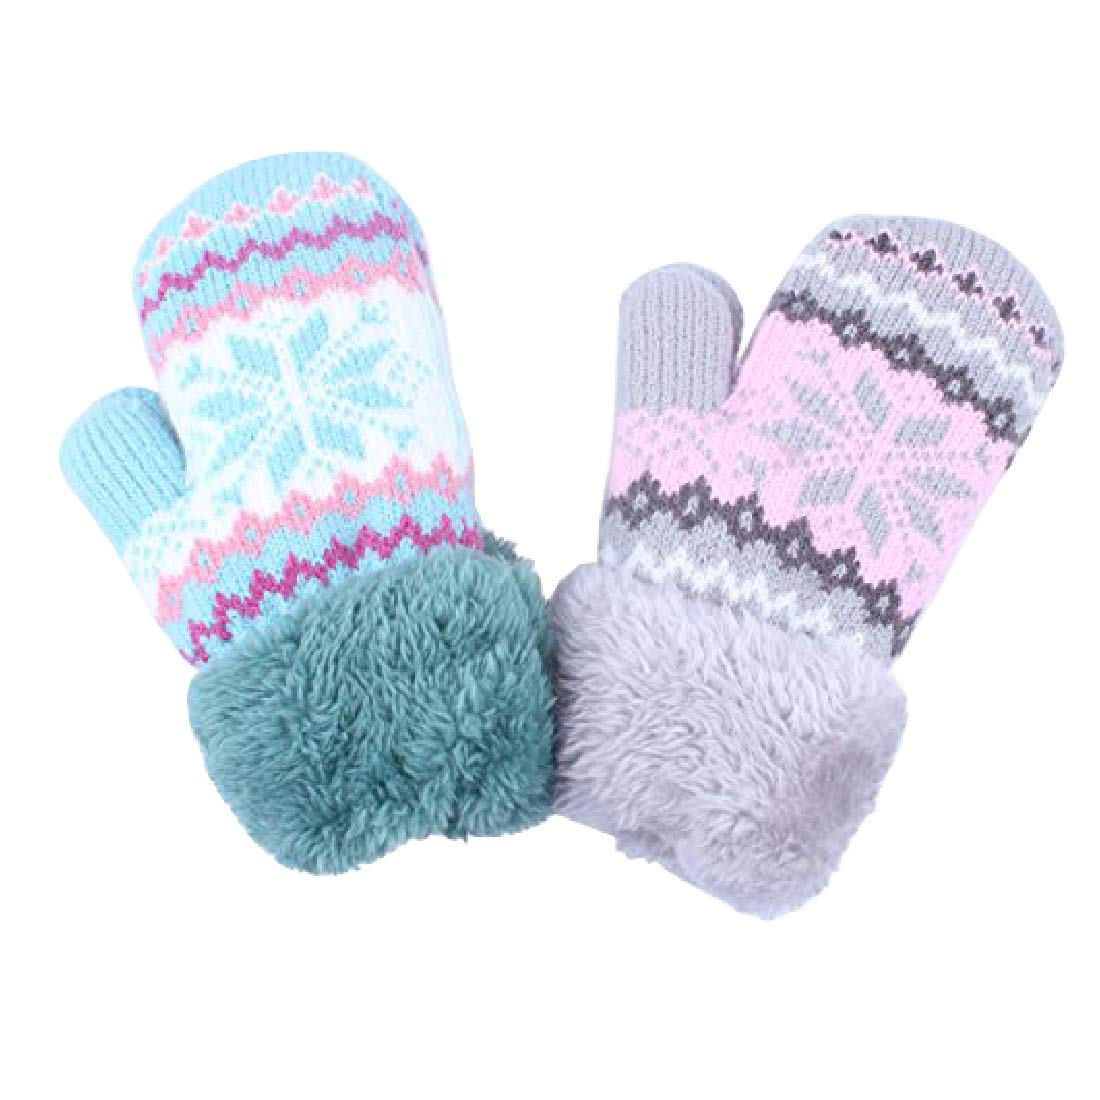 2Pairs Toddler Baby Girl Warm Winter Mittens Gloves With Thicken Sherpa Lined Lining kimmyku KM914-3